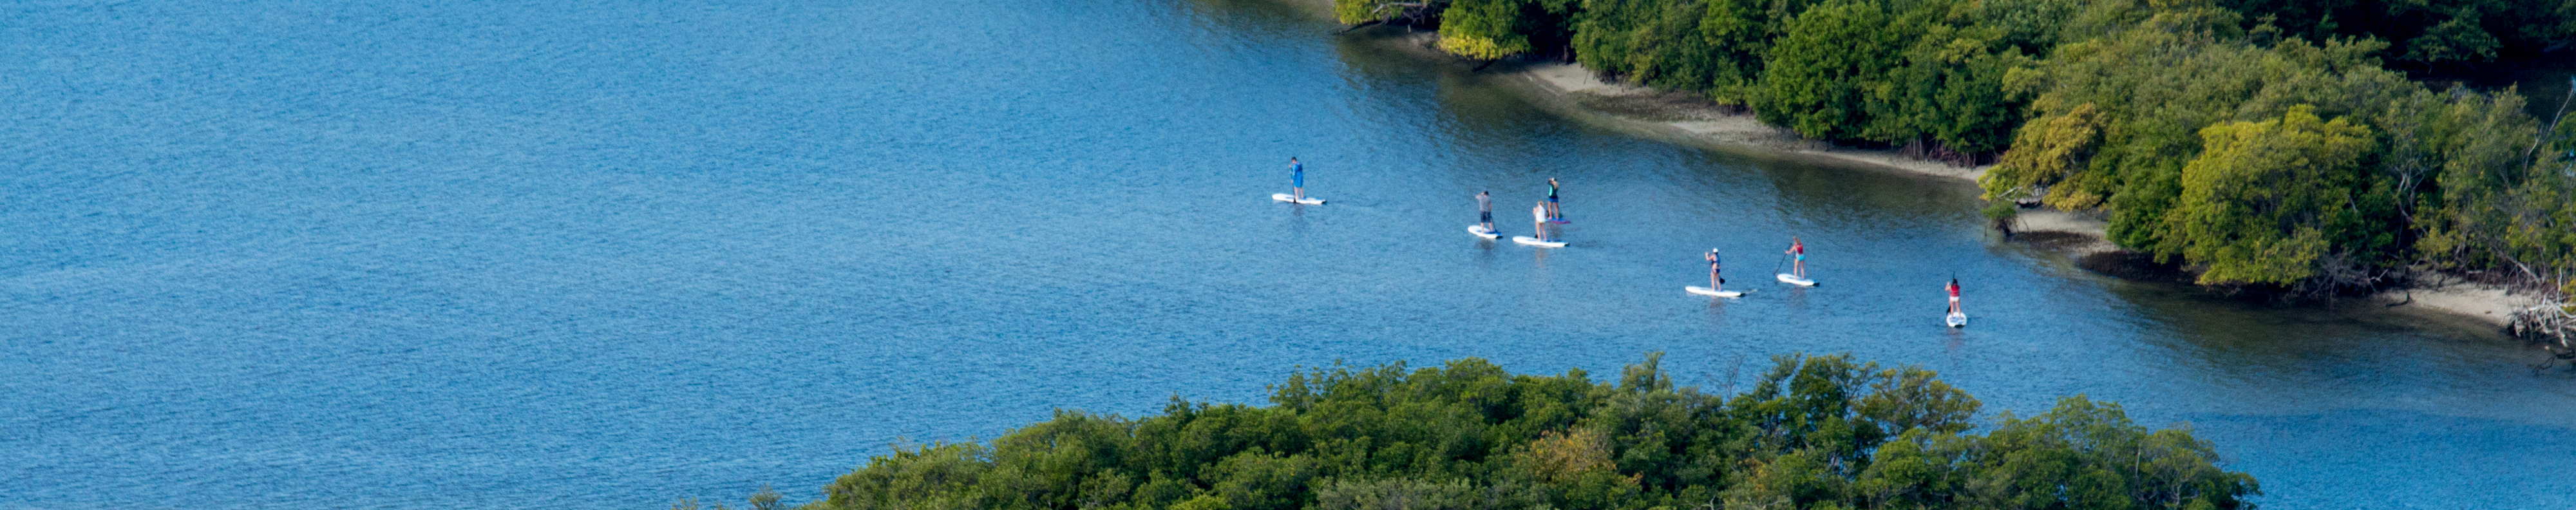 People paddle surfing